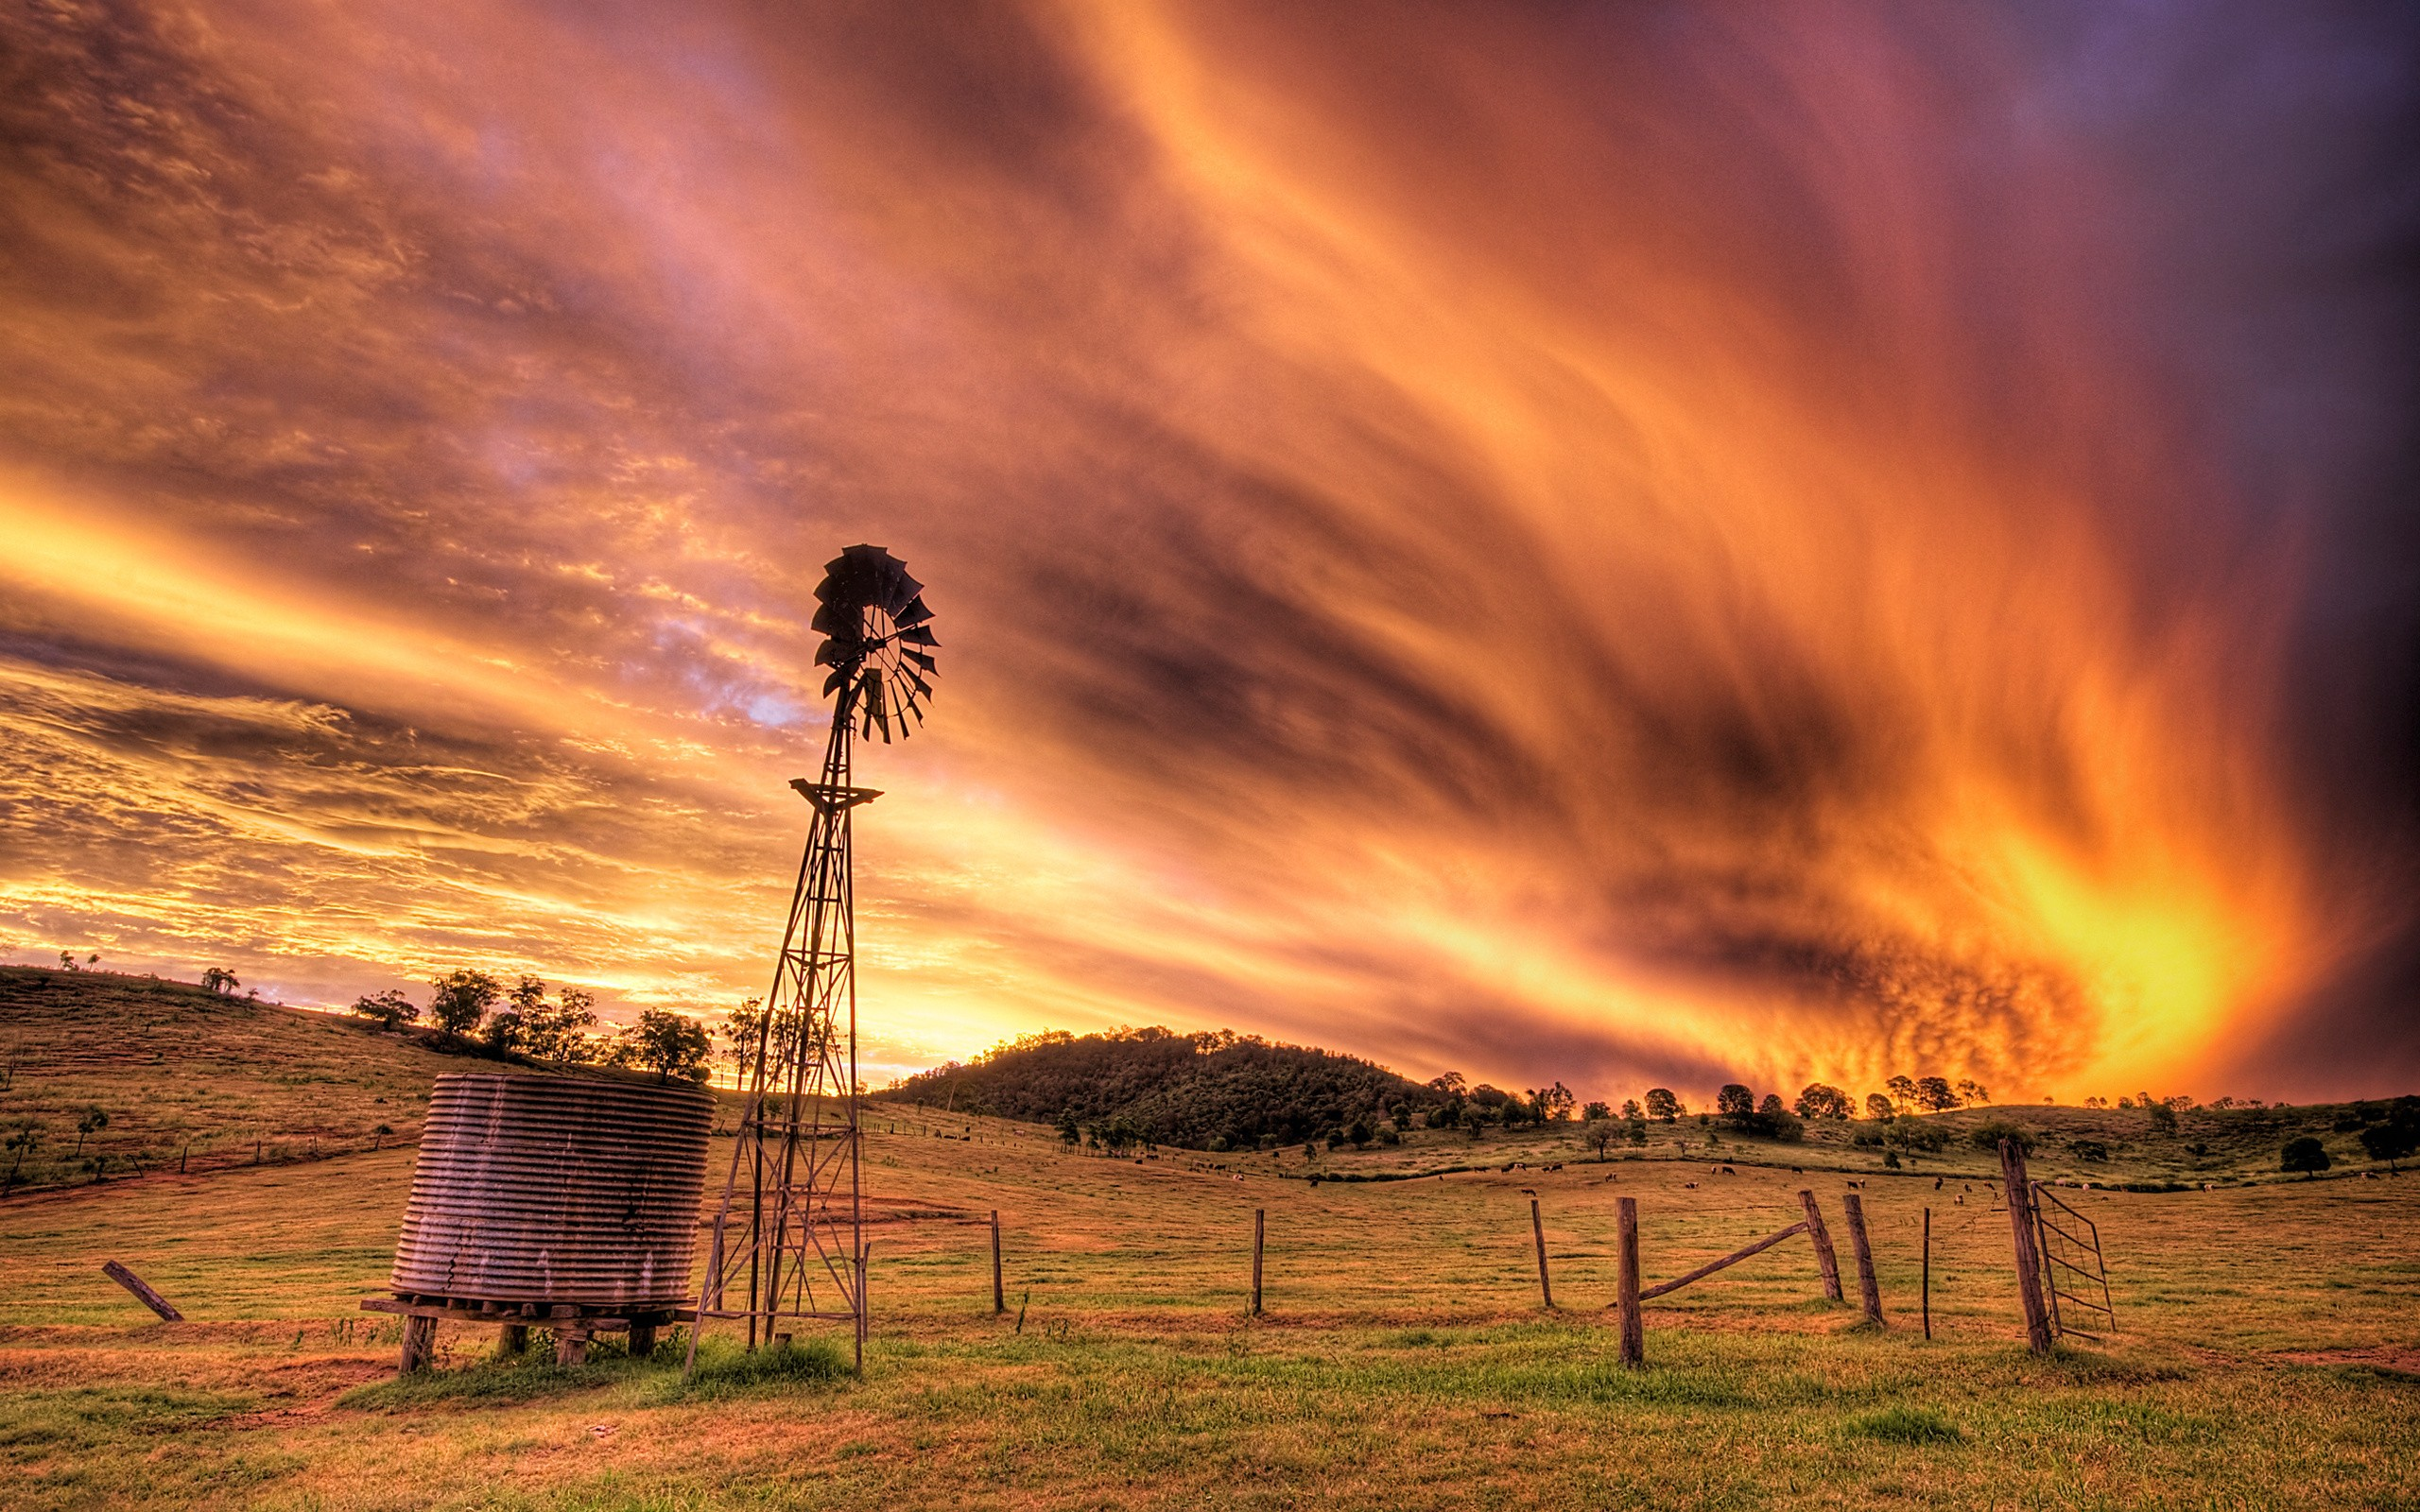 Country Backgrounds   2560x1600   Download HD Wallpaper   WallpaperTip 2560x1600